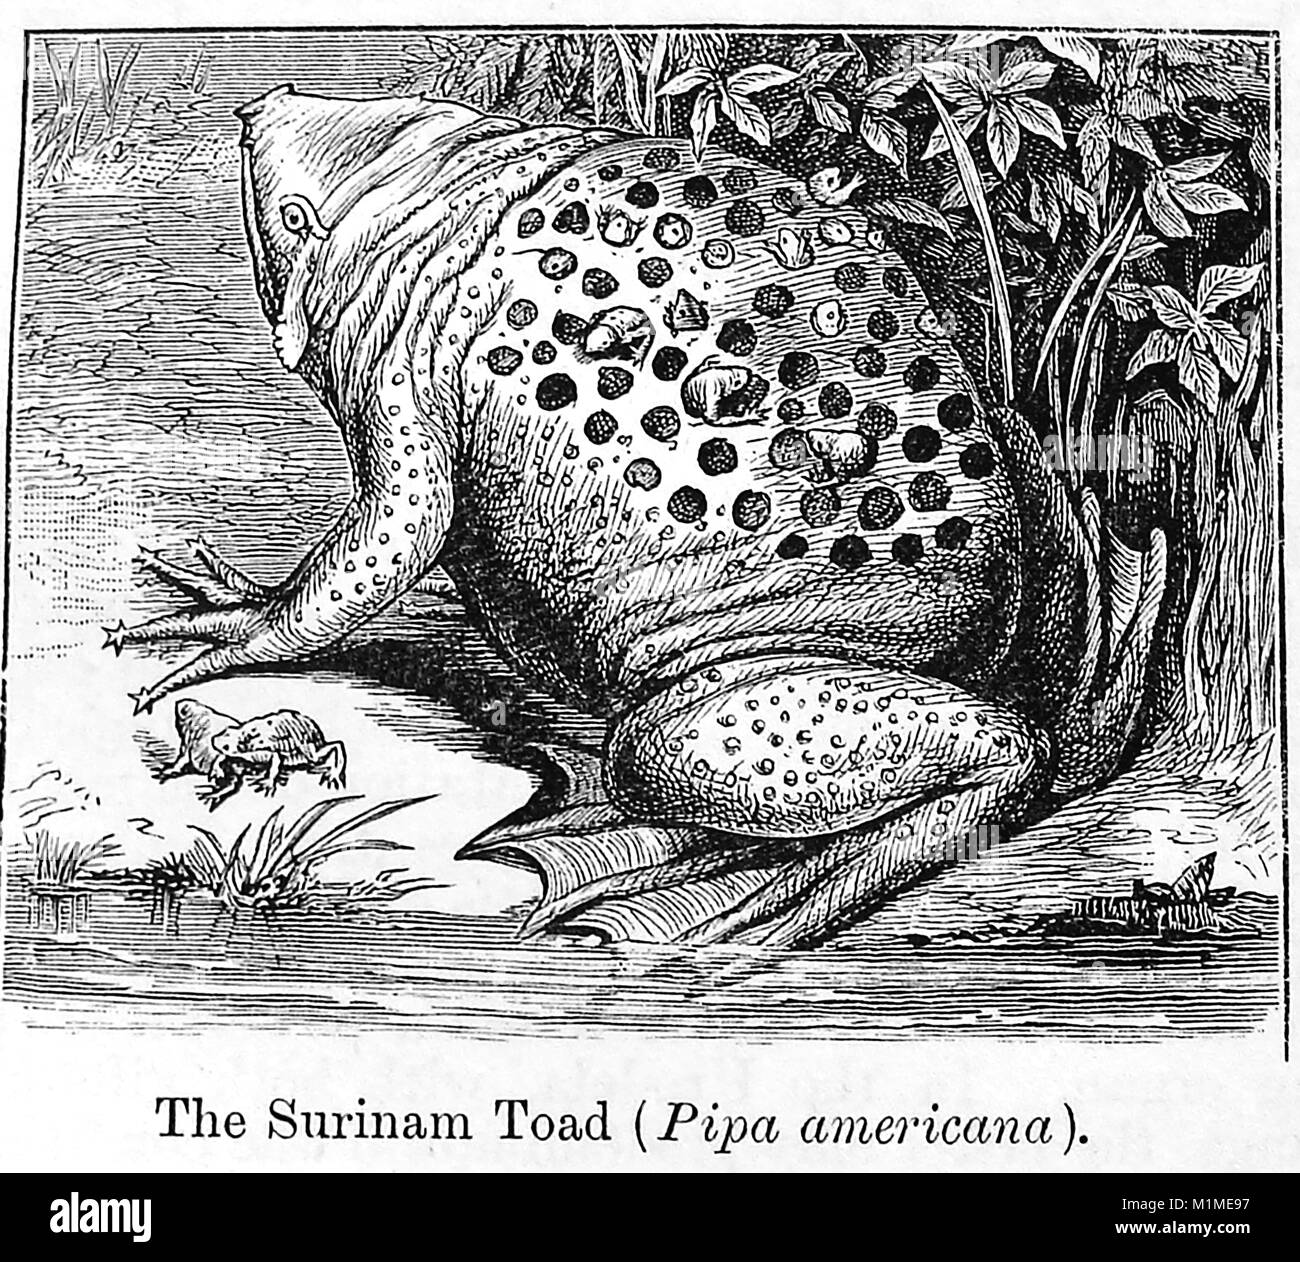 An 1889 illustration from Chamber's Encyclopedia - illustration of a COMMON SURINAME TOAD (Pipa Americana or - Stock Image